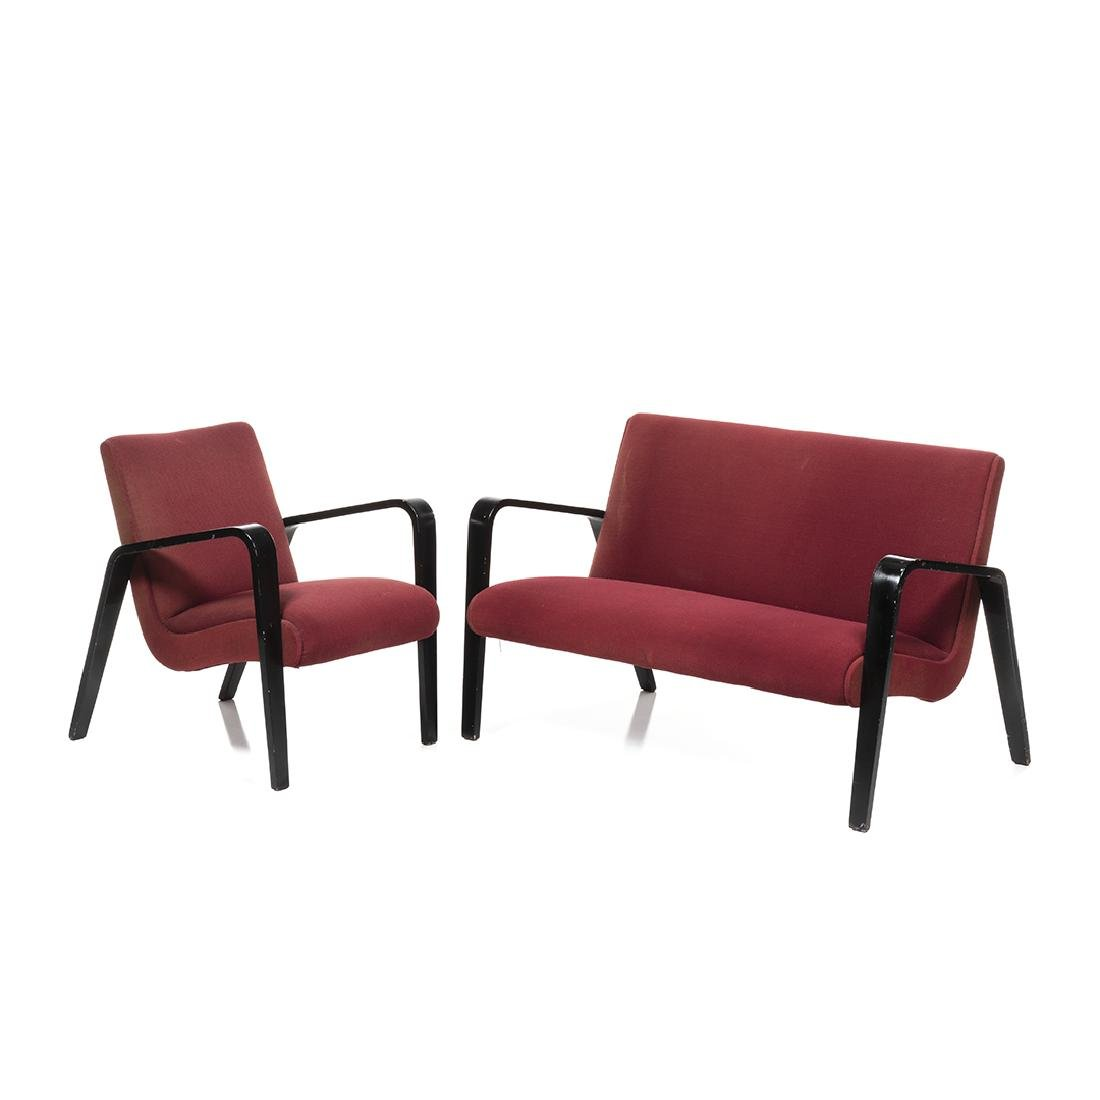 Thonet Chair and Settee